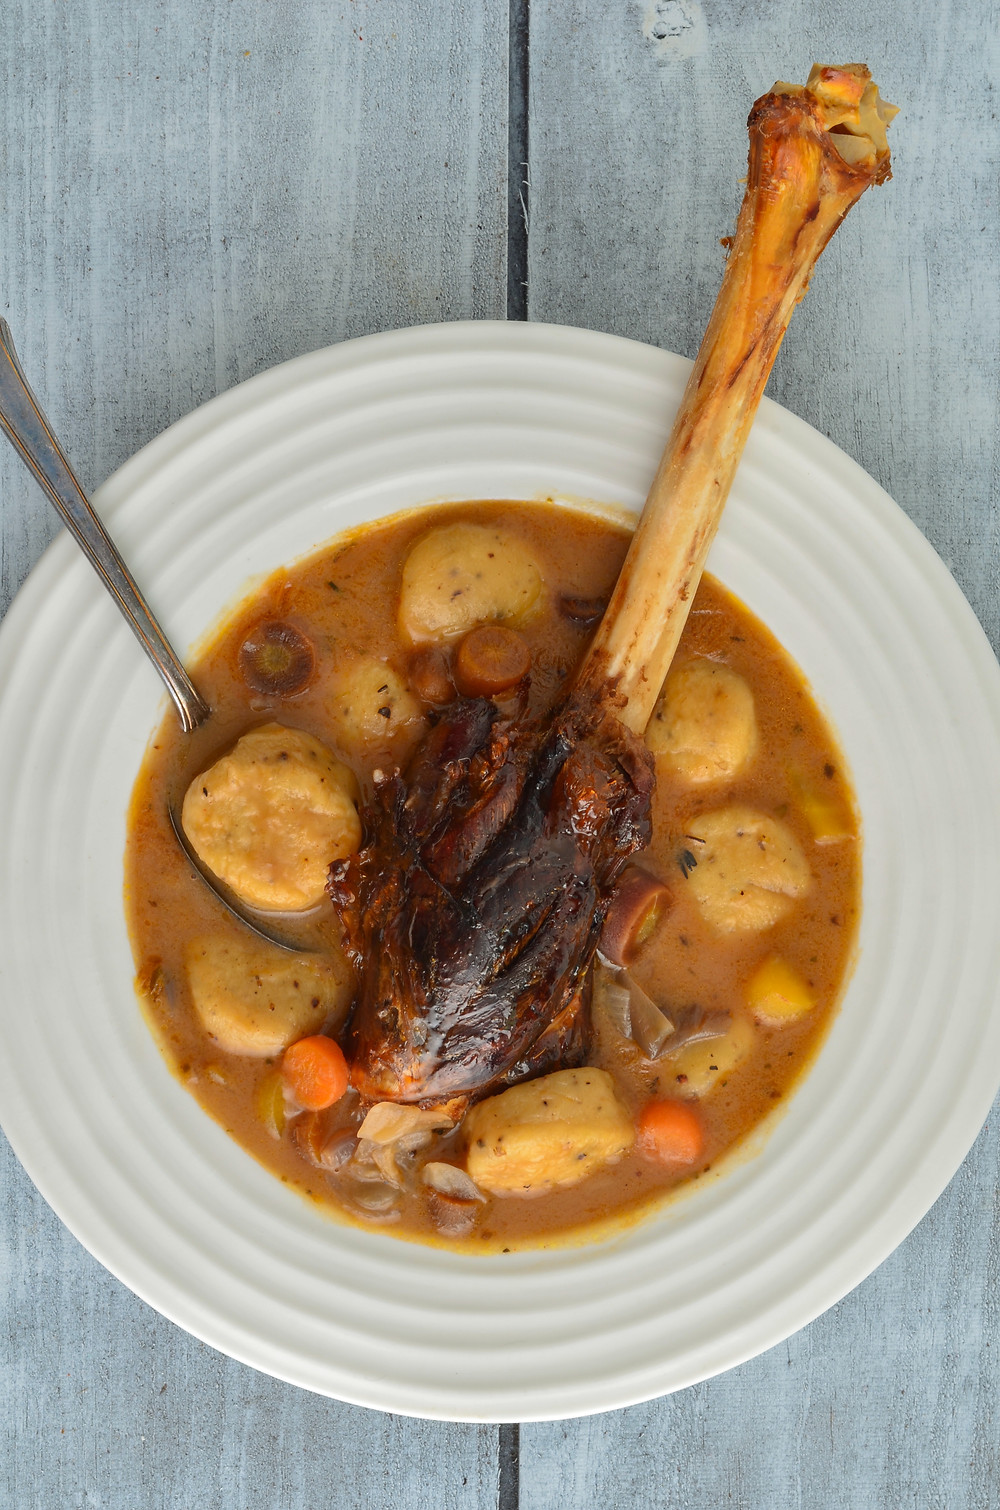 Venison shank, venison recipes, wild game recipes